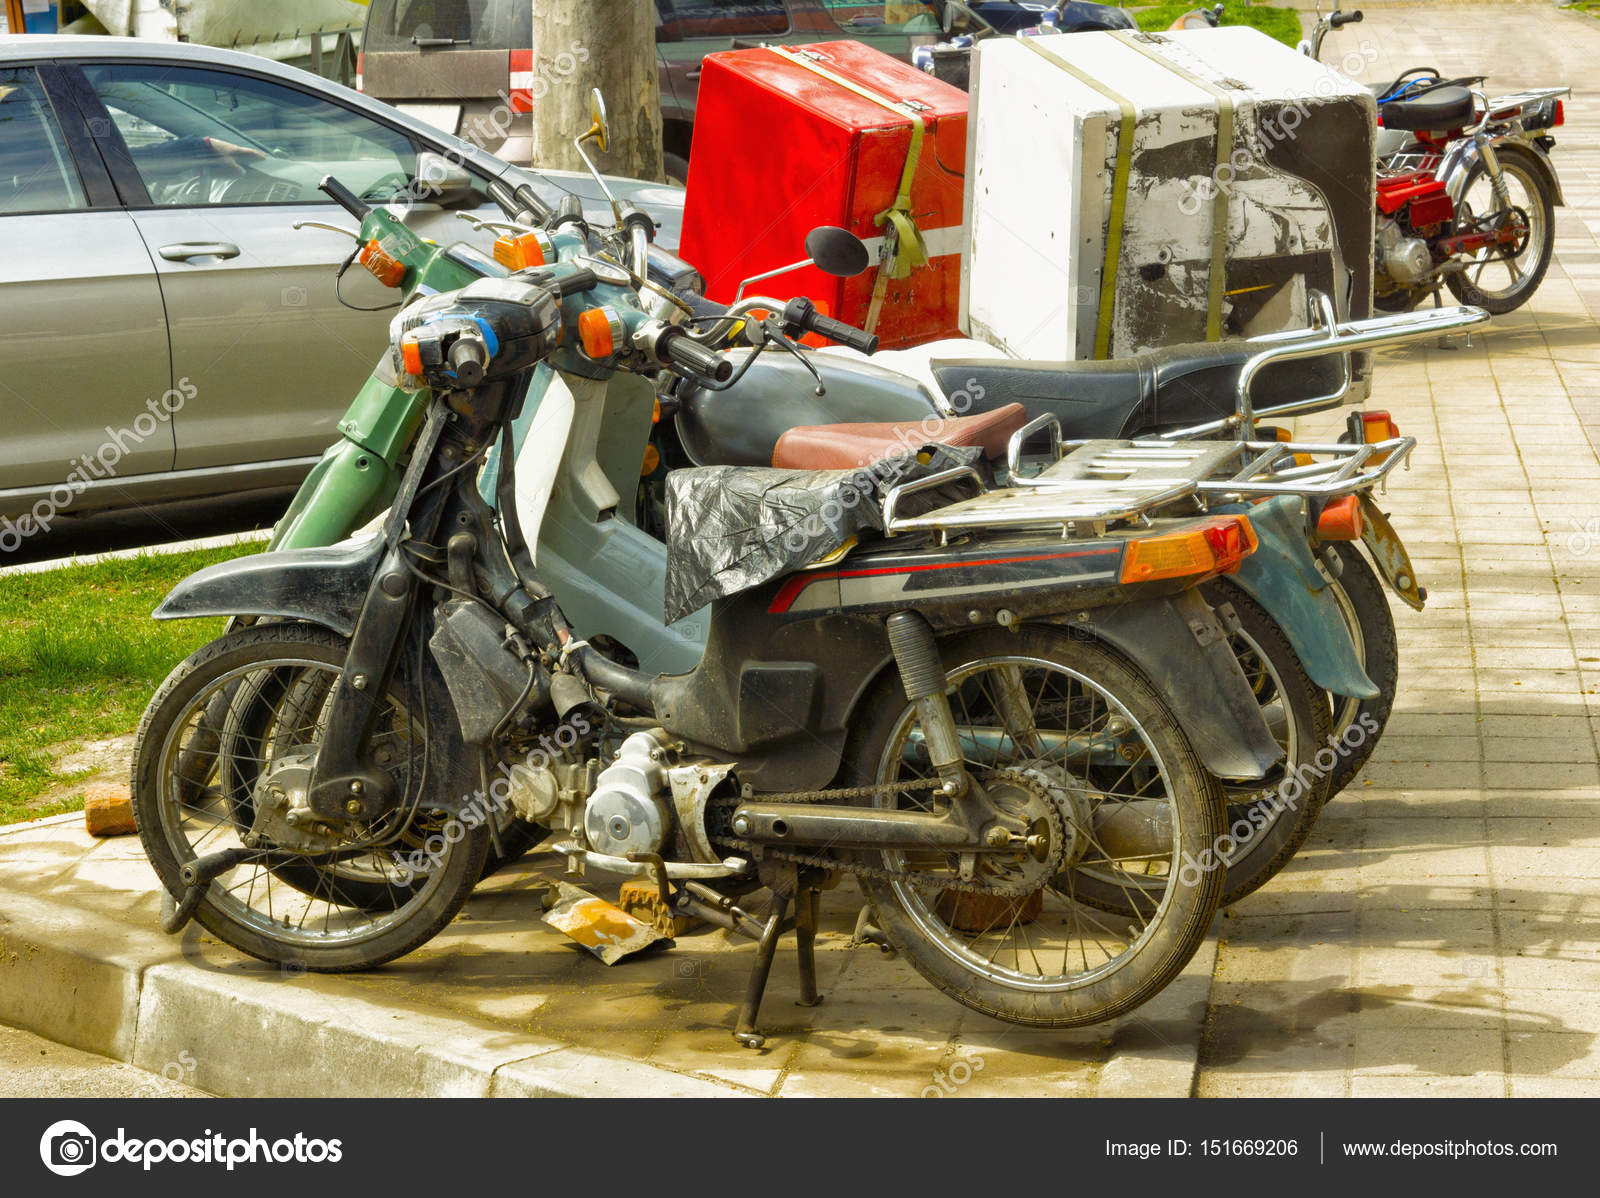 Parking old vehicles in the city — Stock Photo © bodu10 #151669206